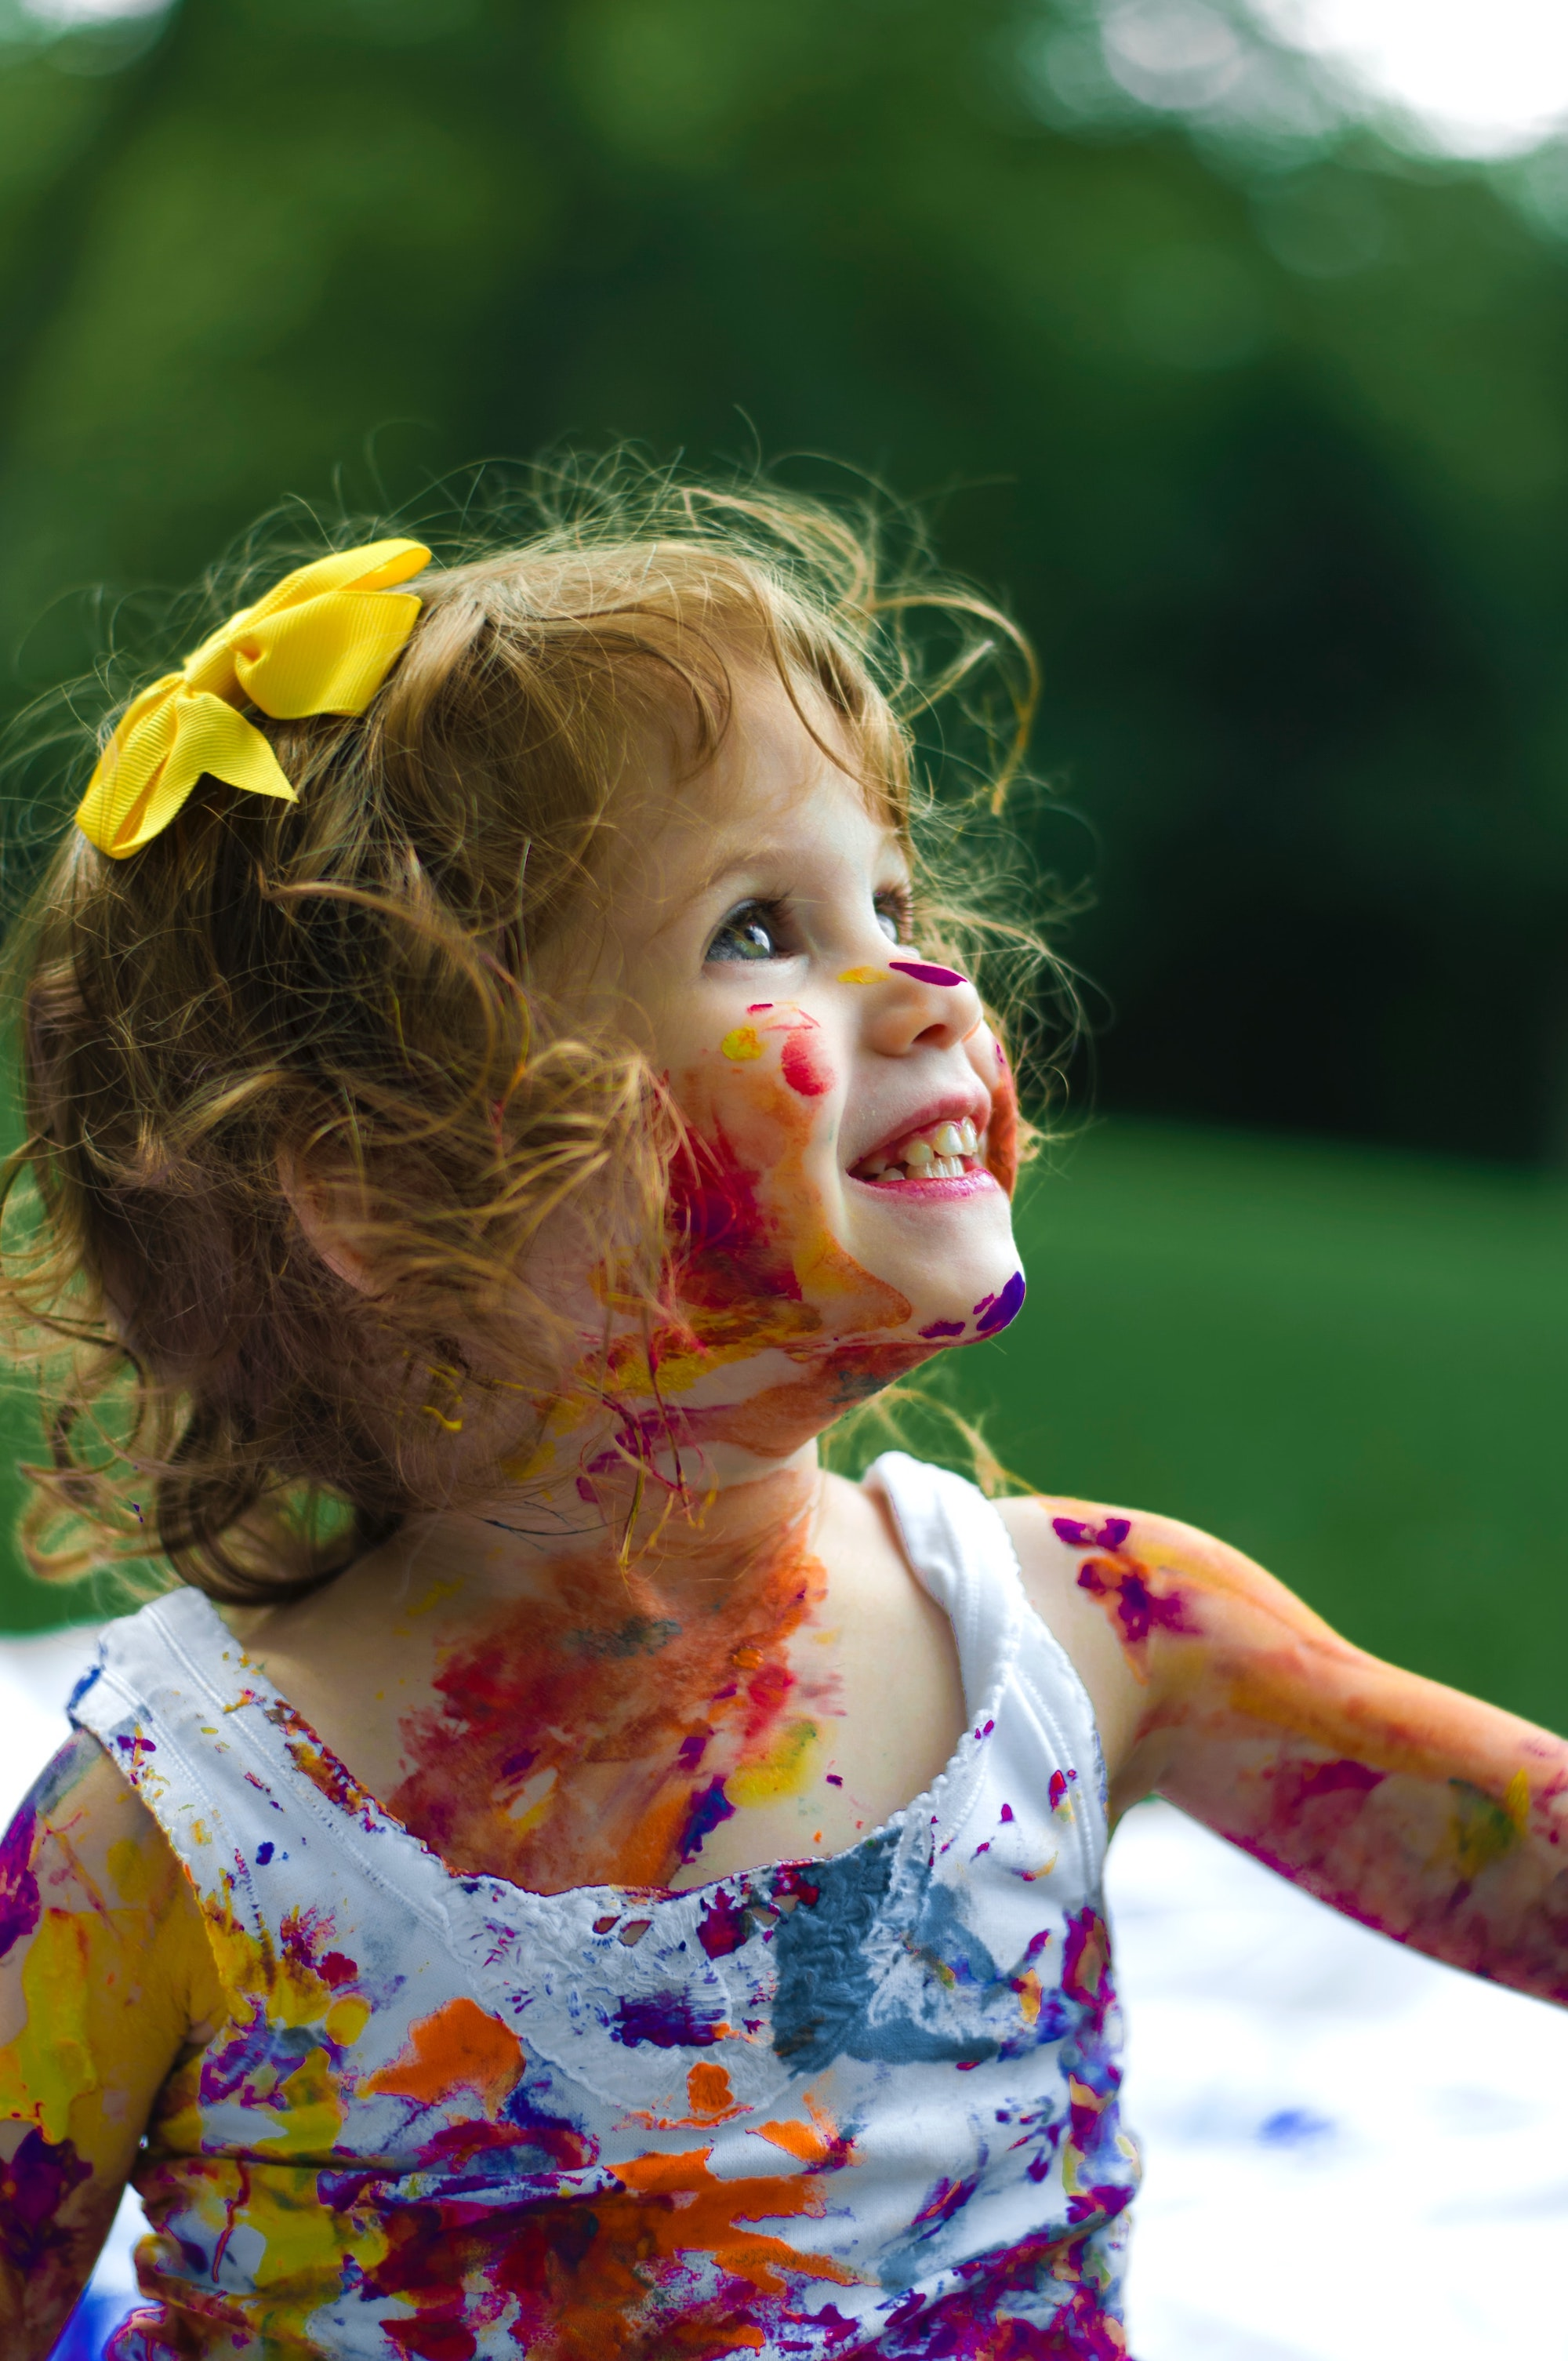 a kid smiling covered in paint